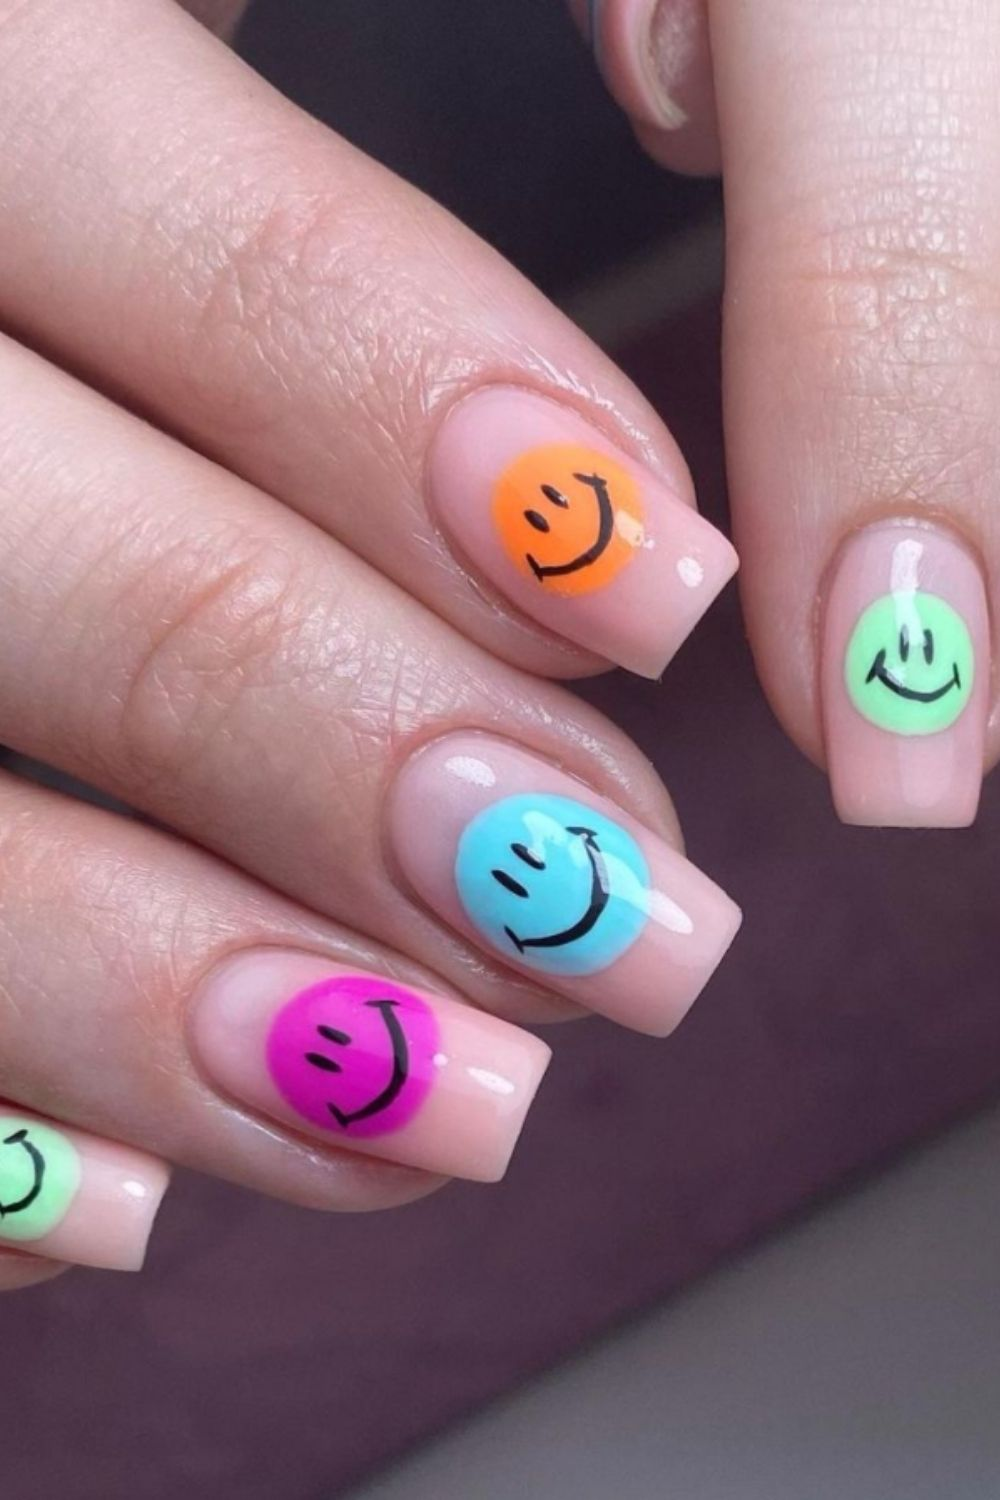 Smiley face long nail design in different colors